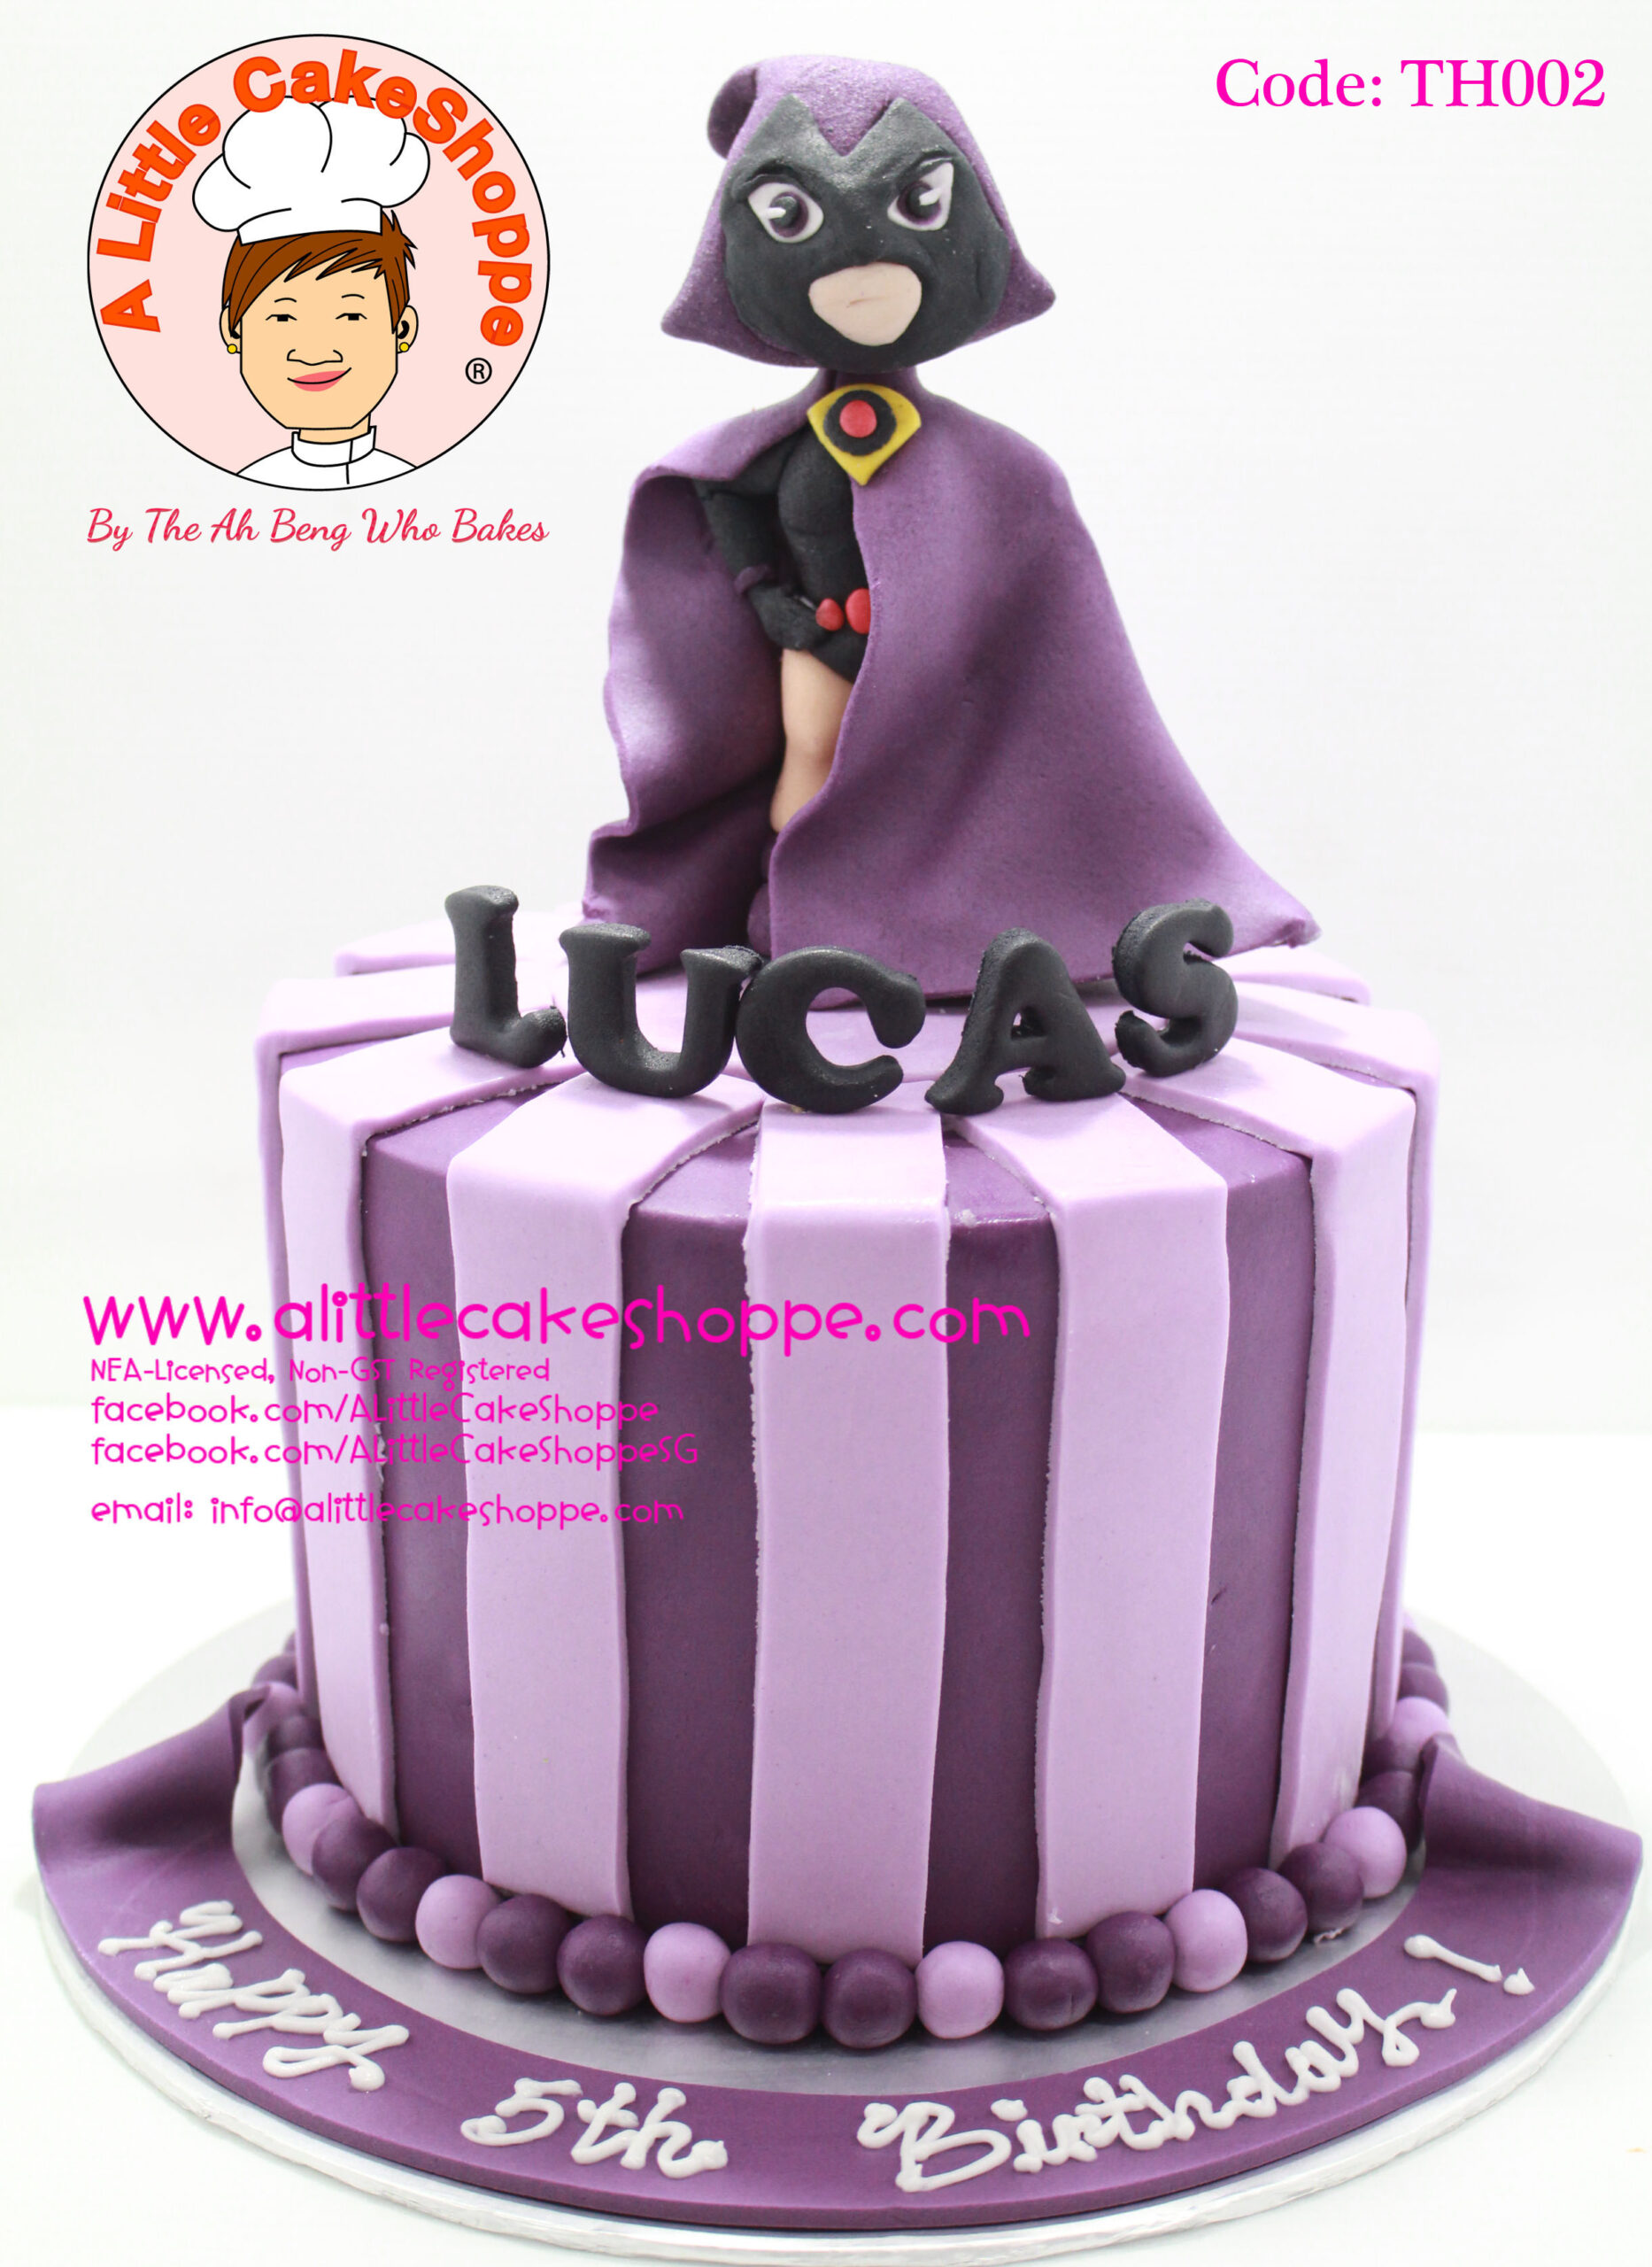 Best Customised Cake Singapore custom cake 2D 3D birthday cake cupcakes wedding corporate events anniversary fondant fresh cream buttercream cakes alittlecakeshoppe a little cake shoppe compliments review singapore bakers SG cakeshop ah beng who bakes teen titans